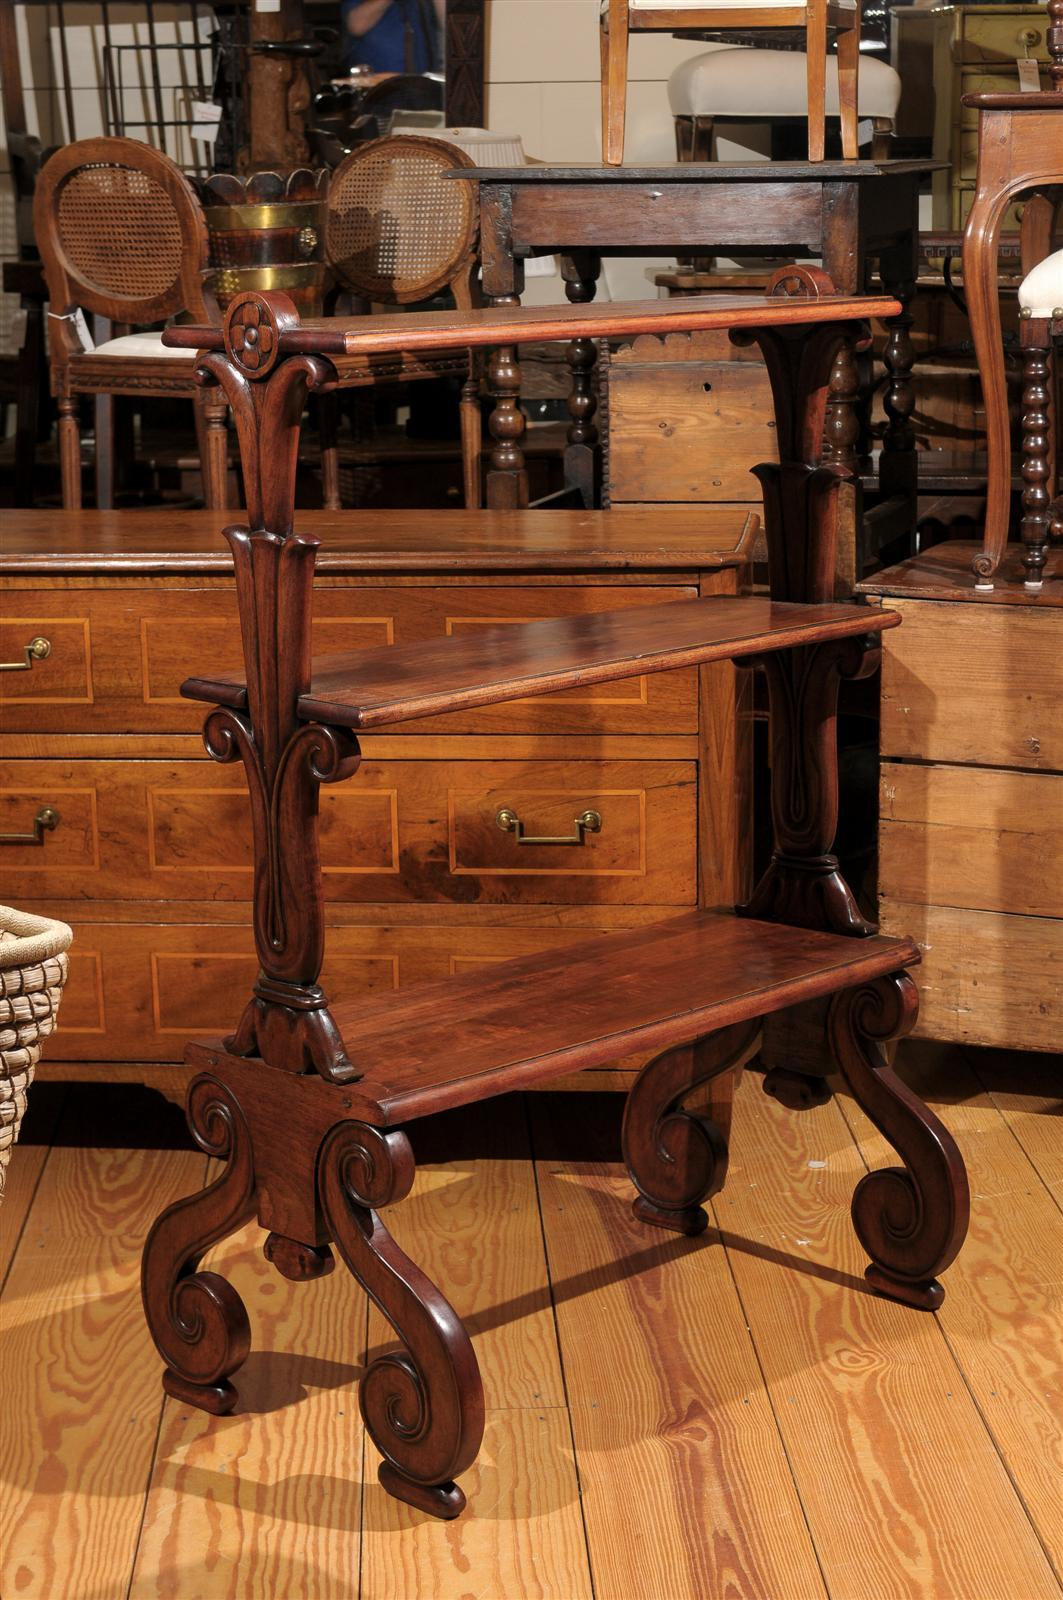 This mahogany tiered shelf from the late 19th century features three shelves over exquisite S-scroll legs. While the wooden rectangular shelves are simple in shape, the eye is immediately drawn to the lateral supports. It all starts with the volutes